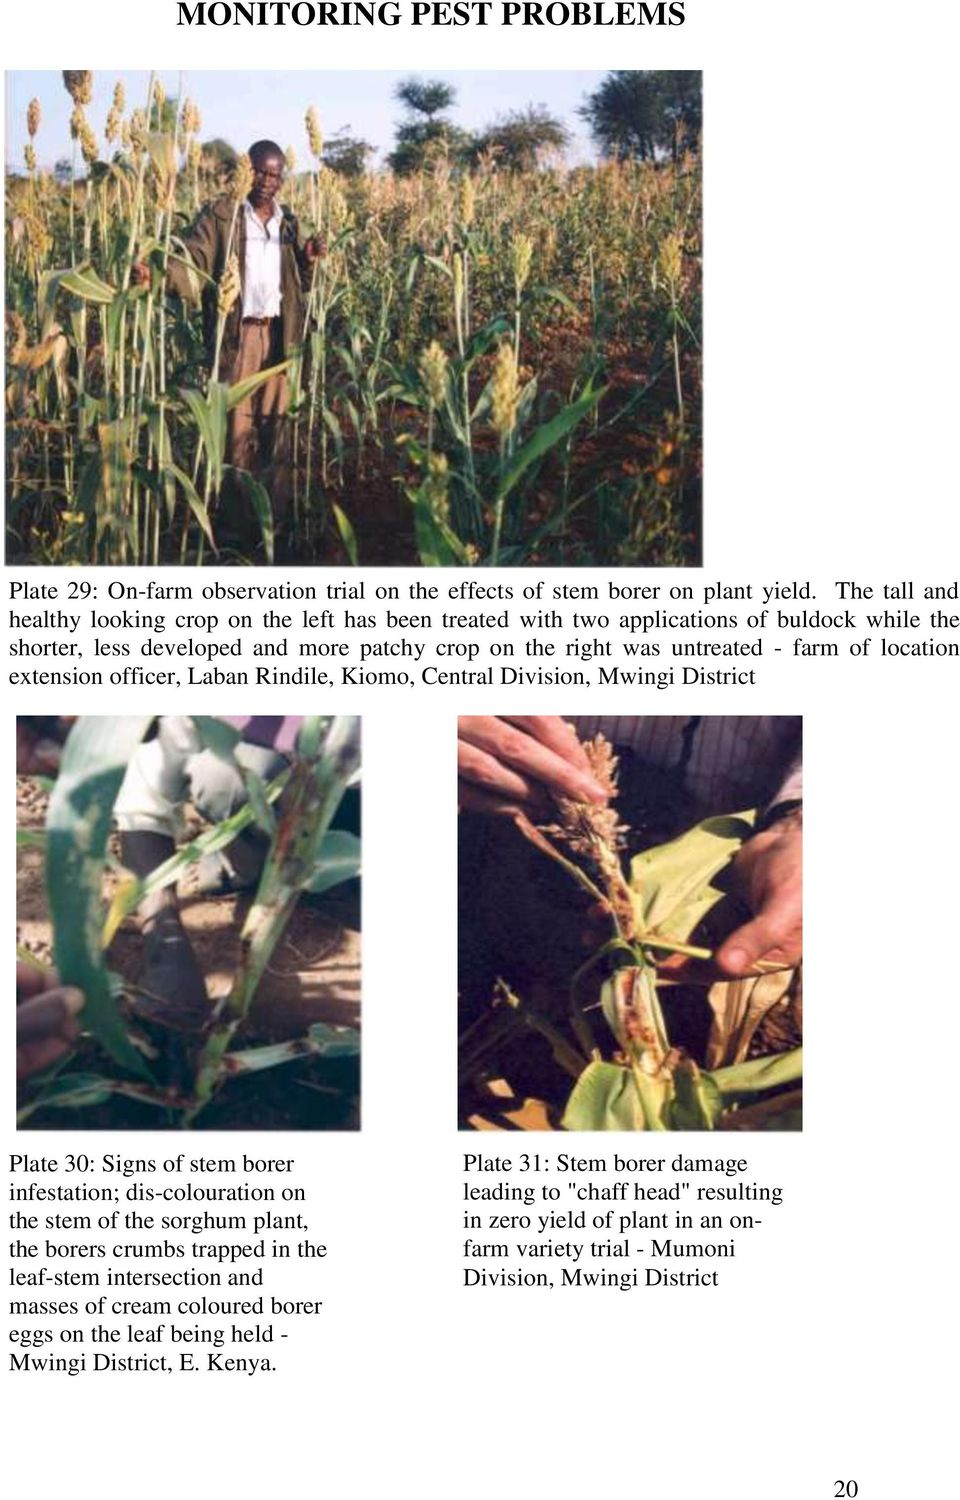 location extension officer, Laban Rindile, Kiomo, Central Division, Mwingi District Plate 30: Signs of stem borer infestation; dis-colouration on the stem of the sorghum plant, the borers